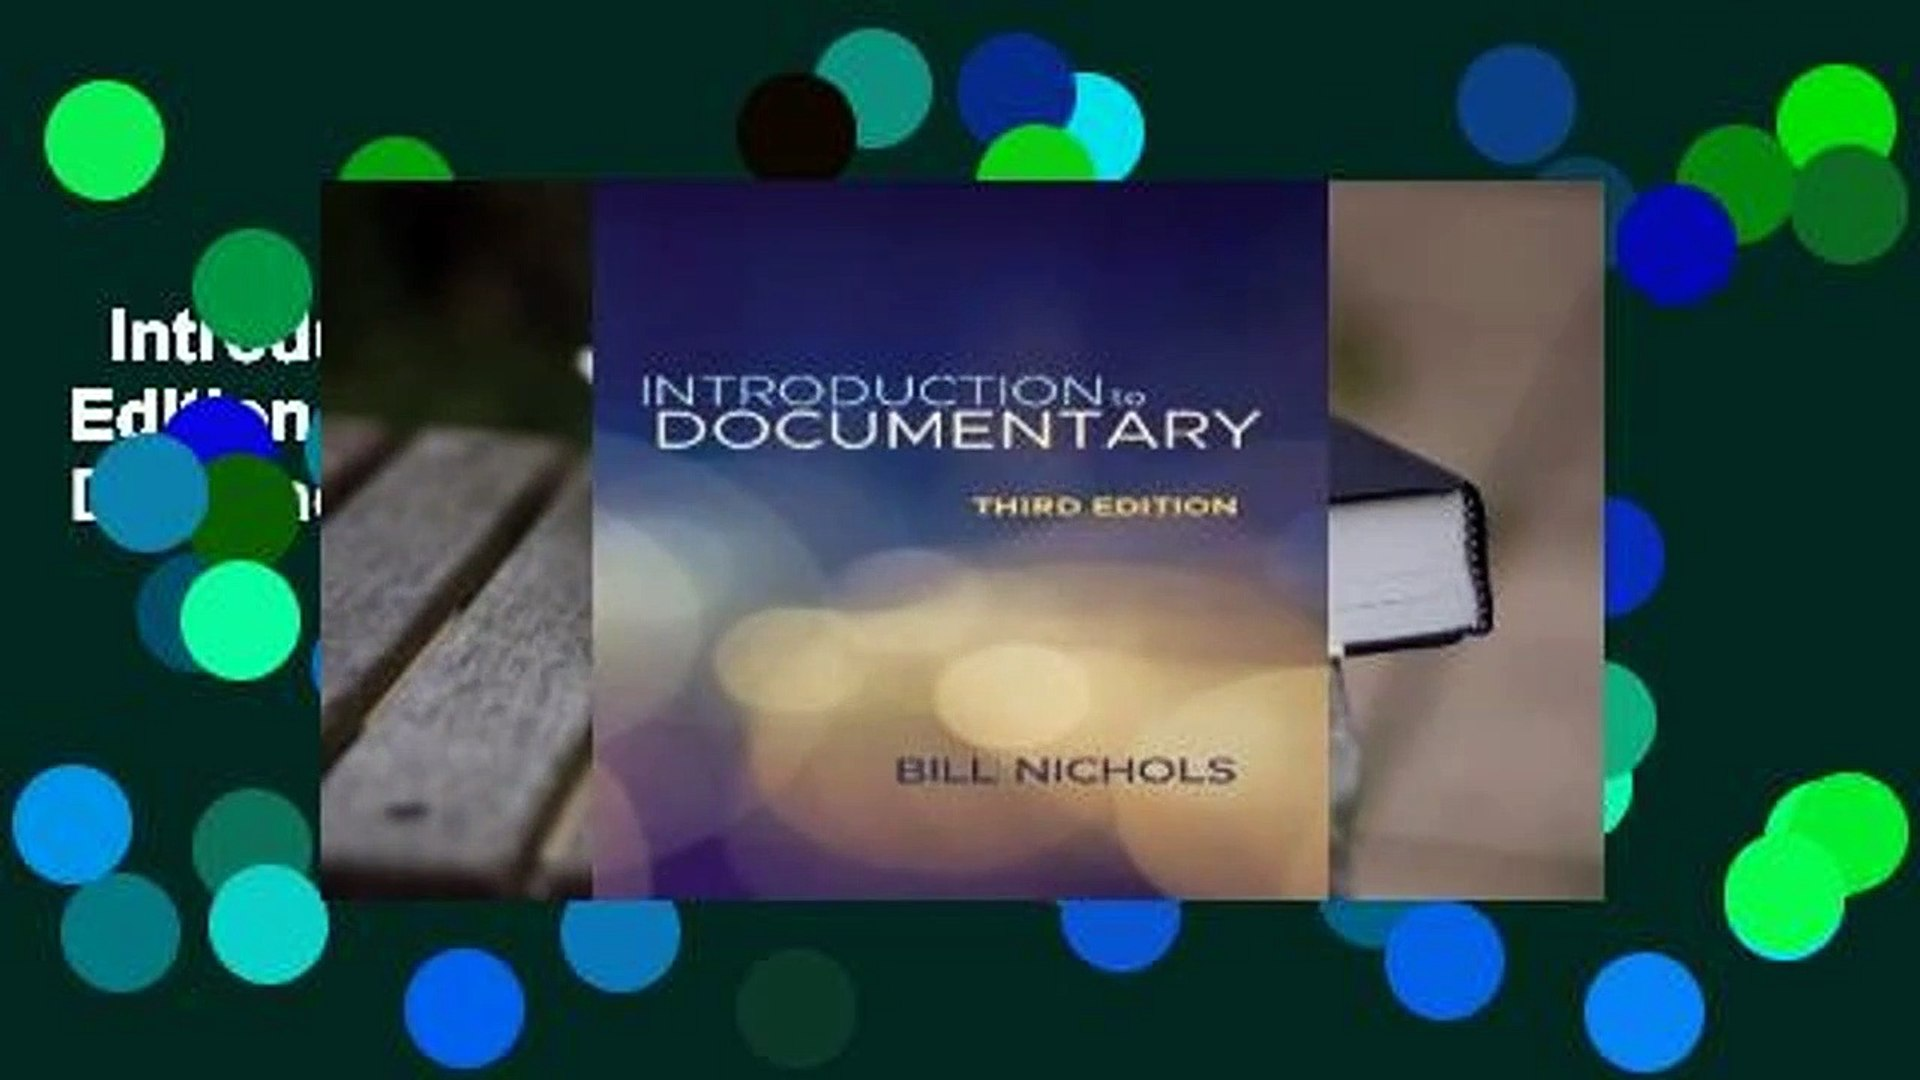 Introduction to Documentary, Third Edition  Review  Full E-book  Introduction to Documentary,